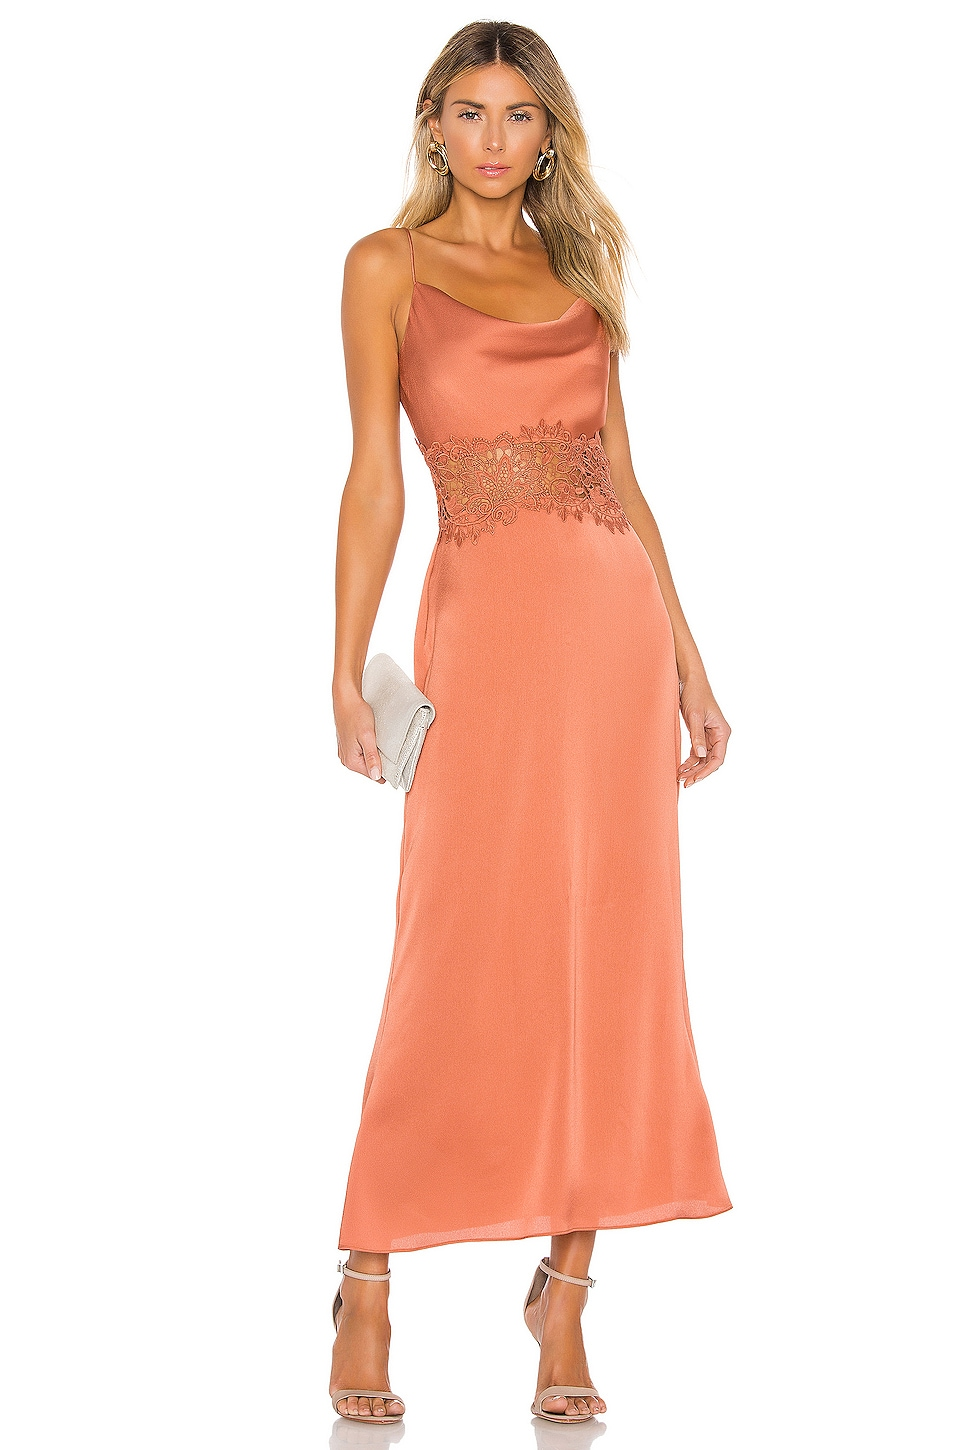 keepsake Vienna Dress in Burnt Orange